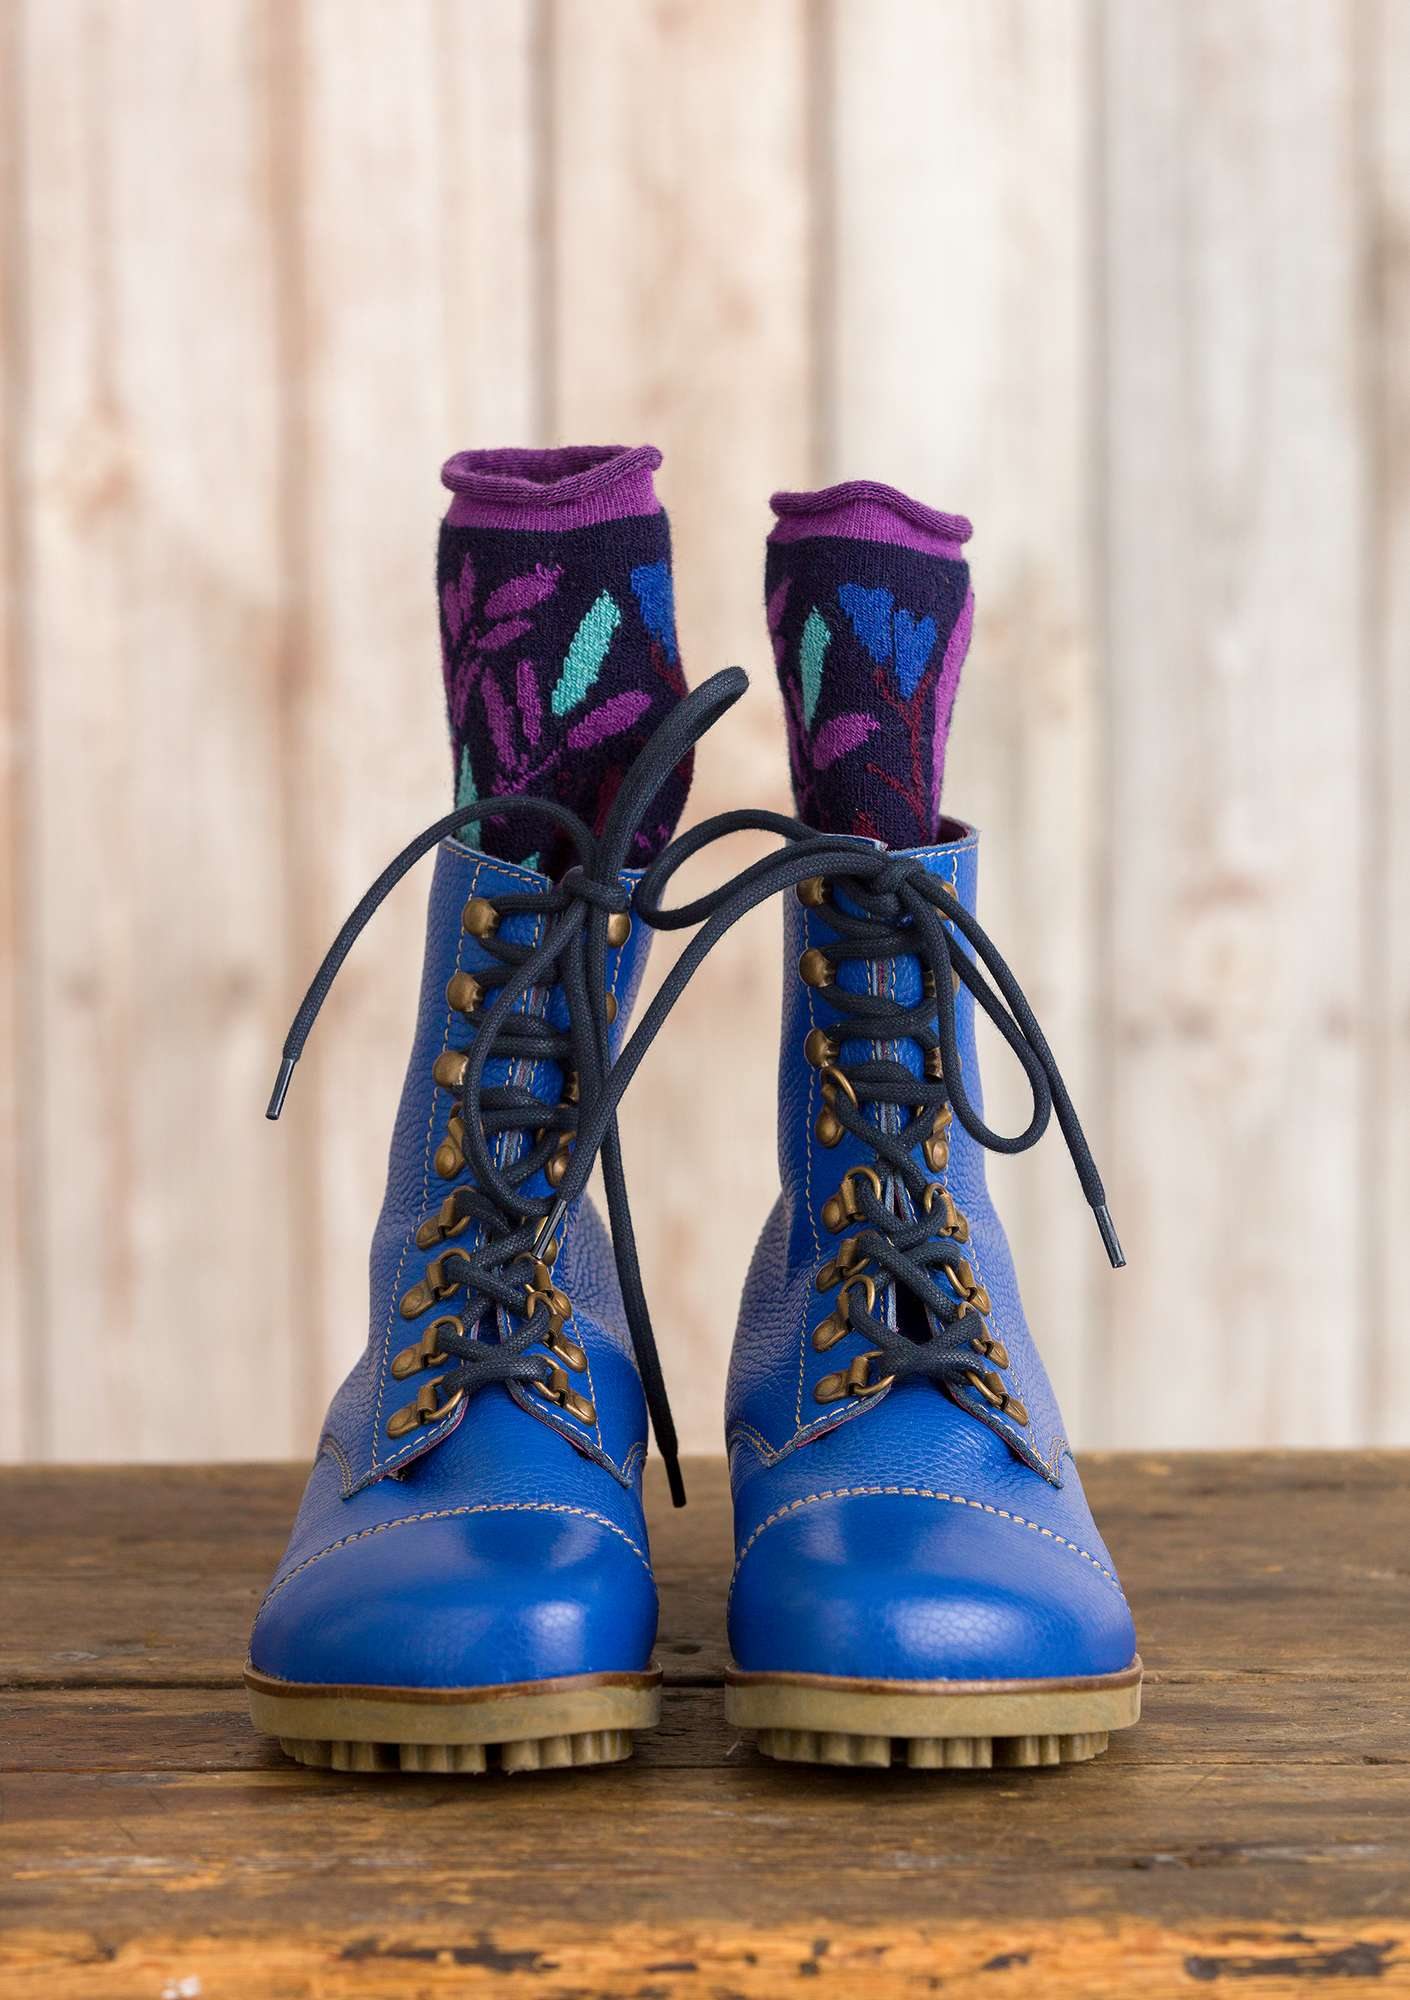 Bottines porcelain blue